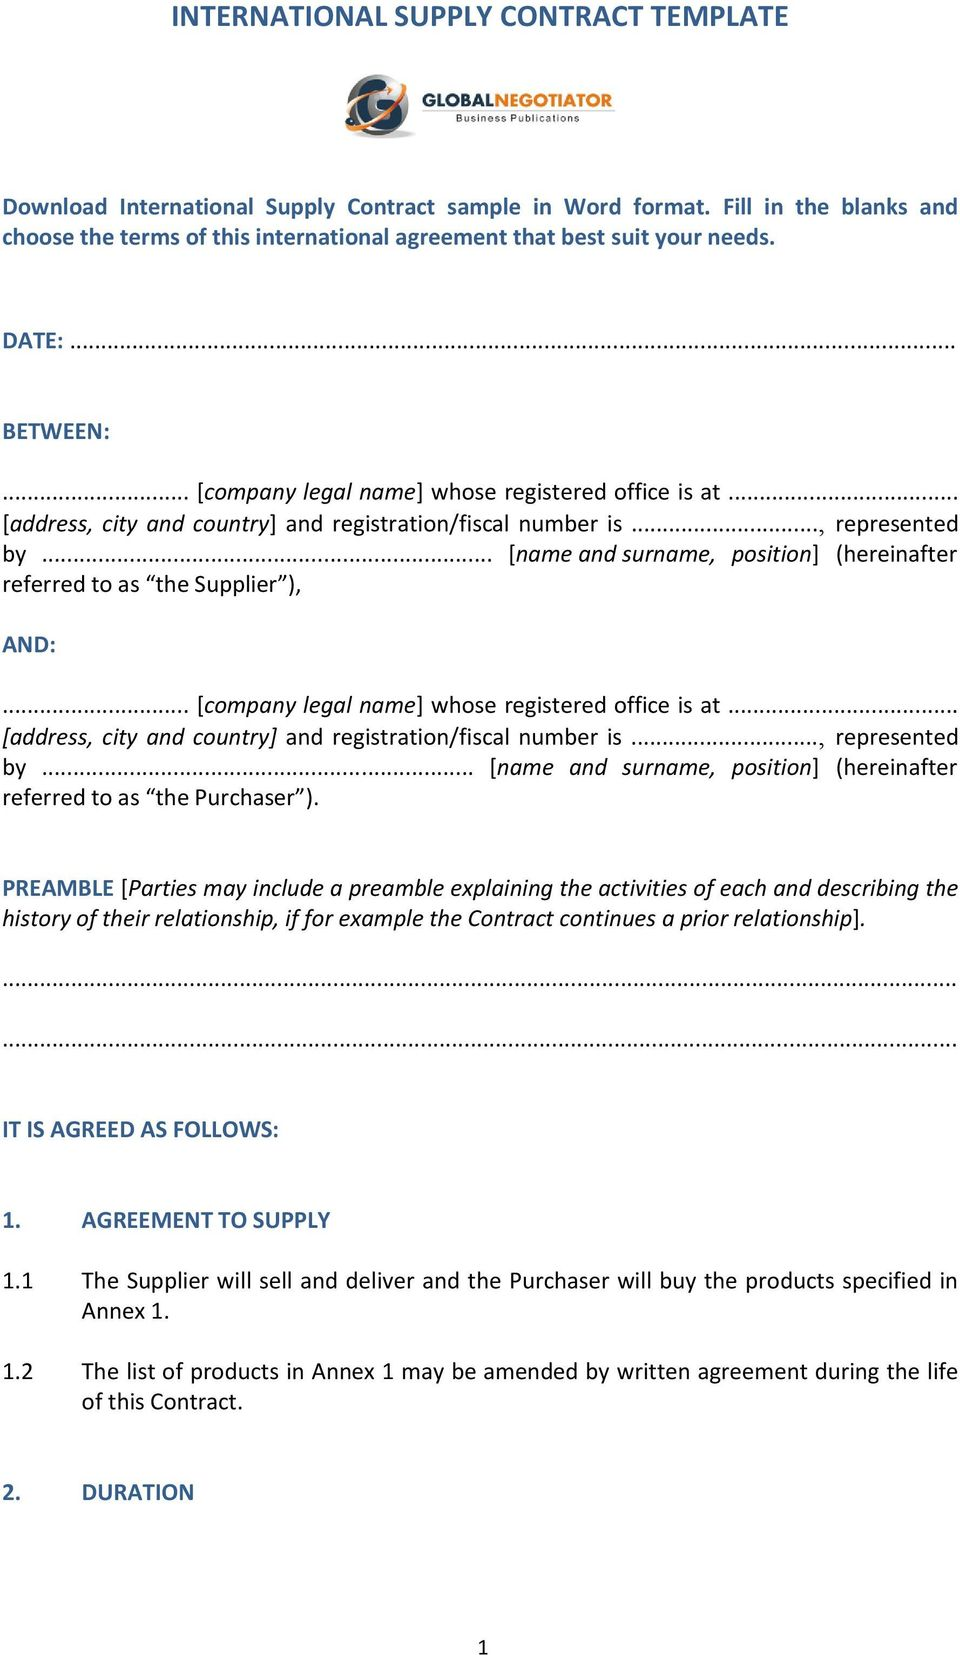 International Supply Contract Template Pdf